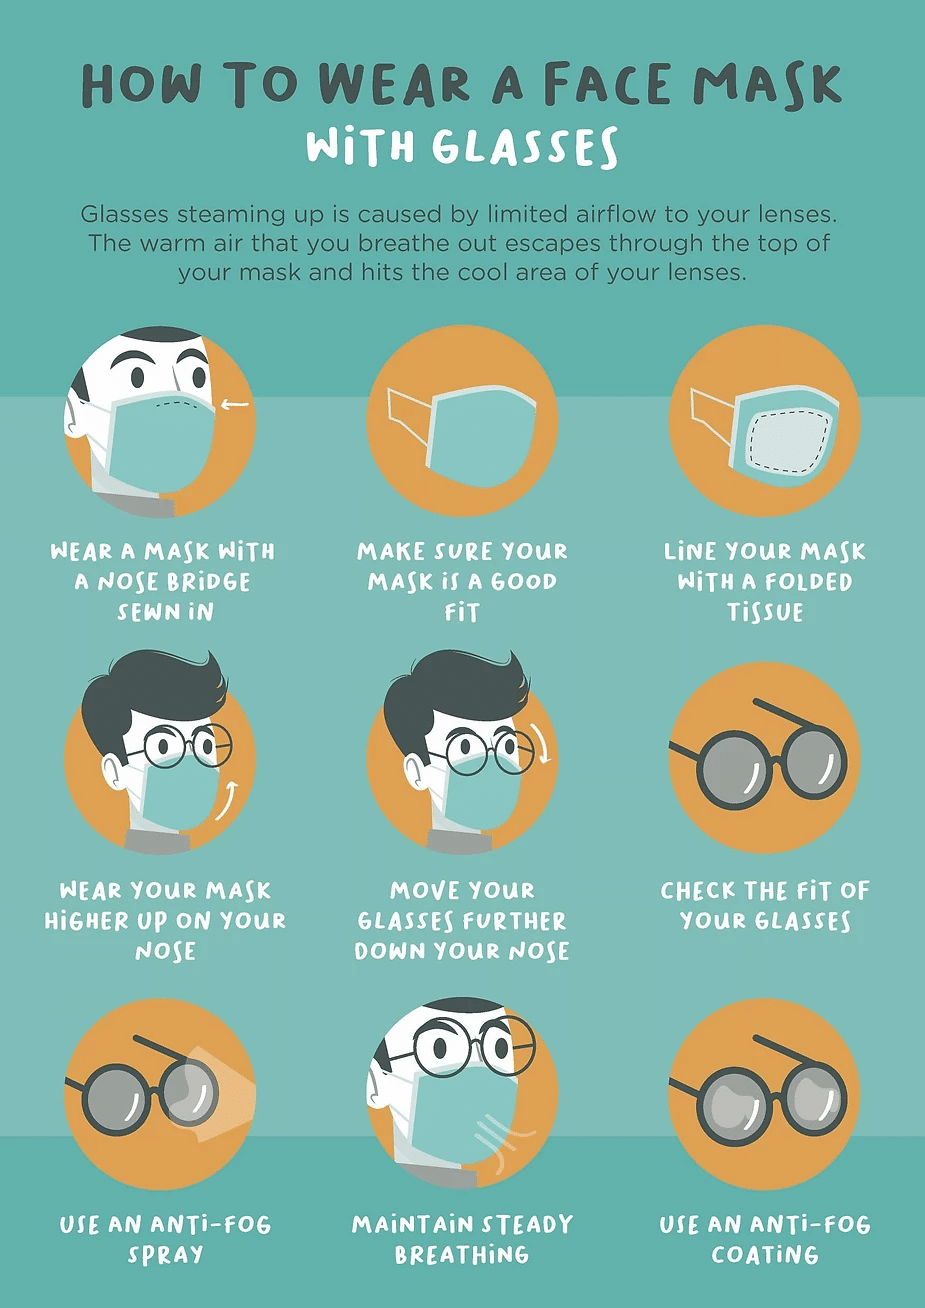 how to wear a face mask with glasses